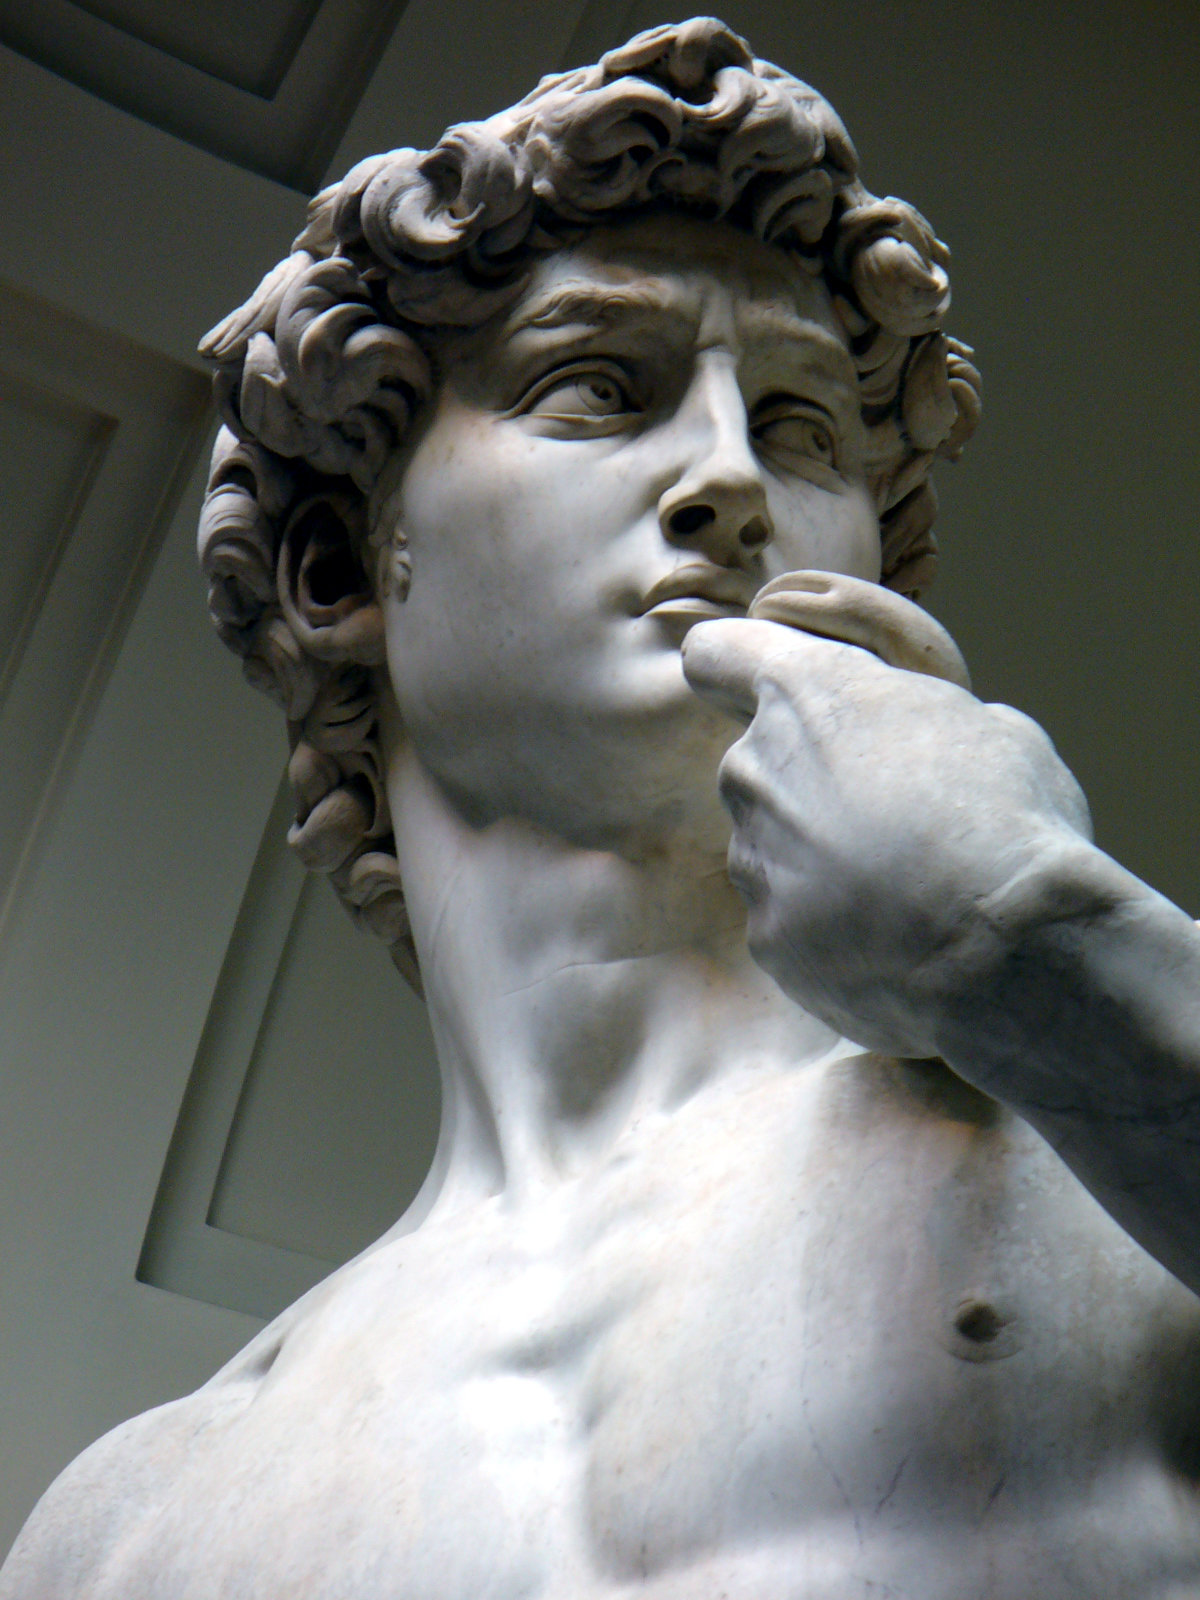 statues of david David vs goliath, generated by the author using scanview shown by permission of the digital michelangelo project everyone has seen photos of michelangelo's david, but unfortunately the sculpture is invariably shown from the side view, rather than from the front.